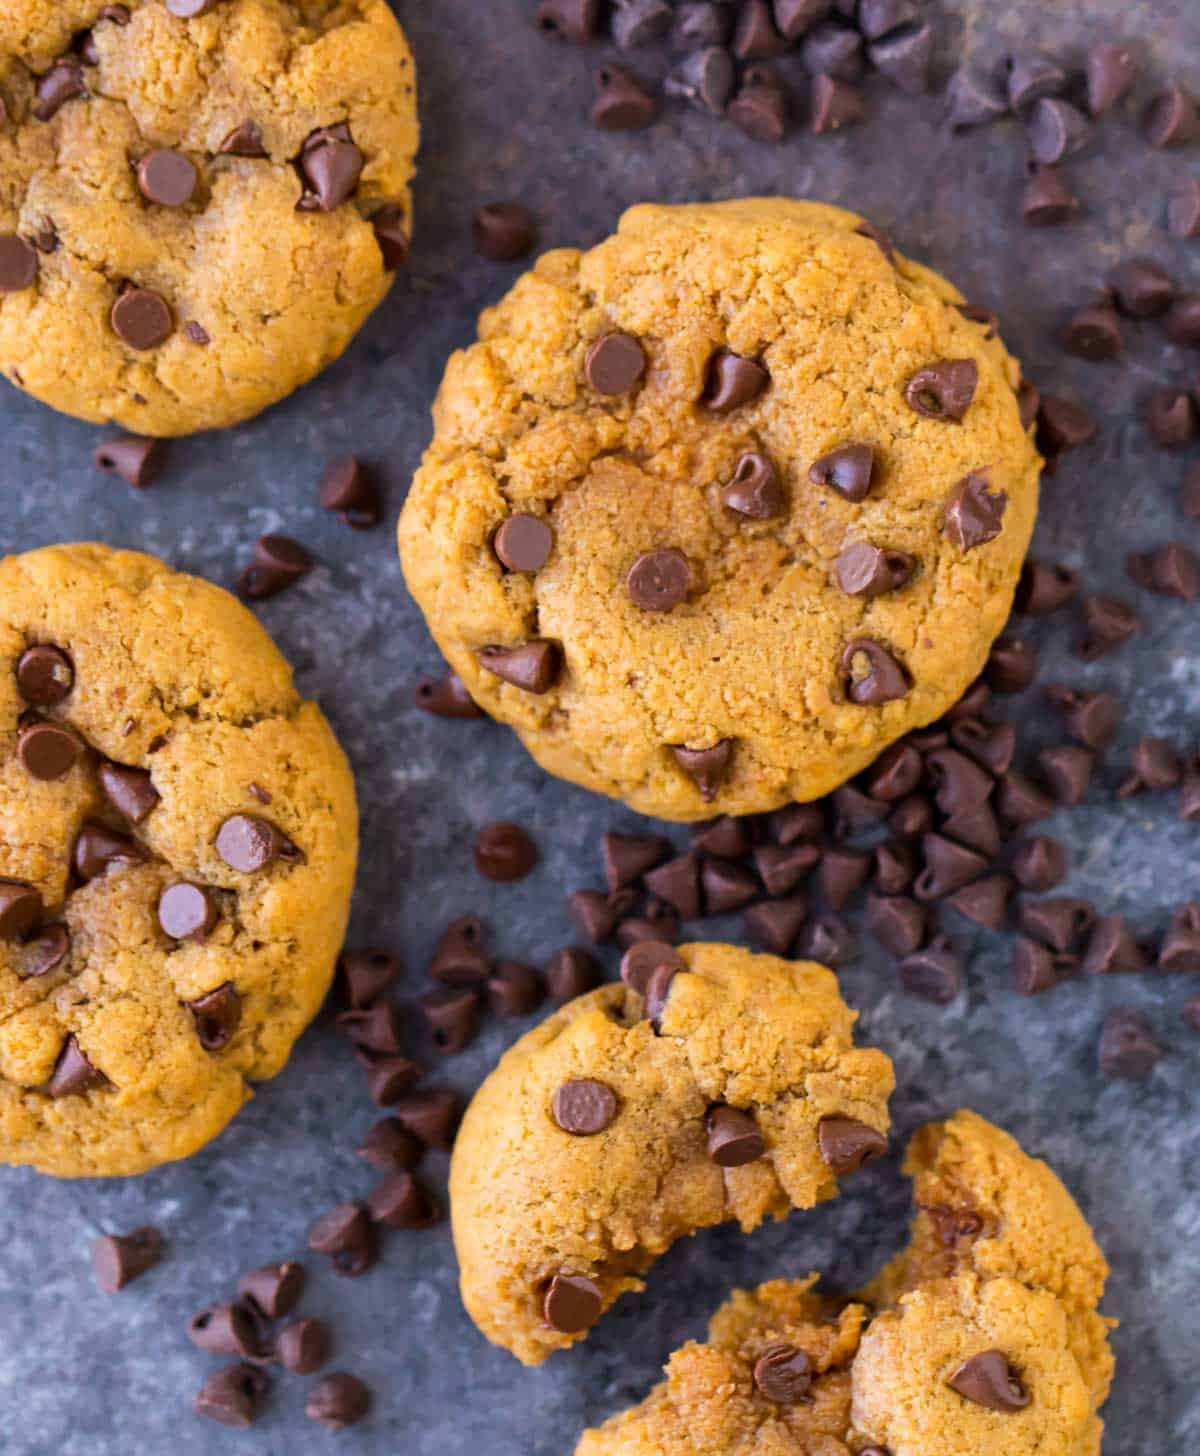 Easy Peanut Butter Protein Cookies. Gluten free, high in protein, and low carb. Perfect for high protein snacks!